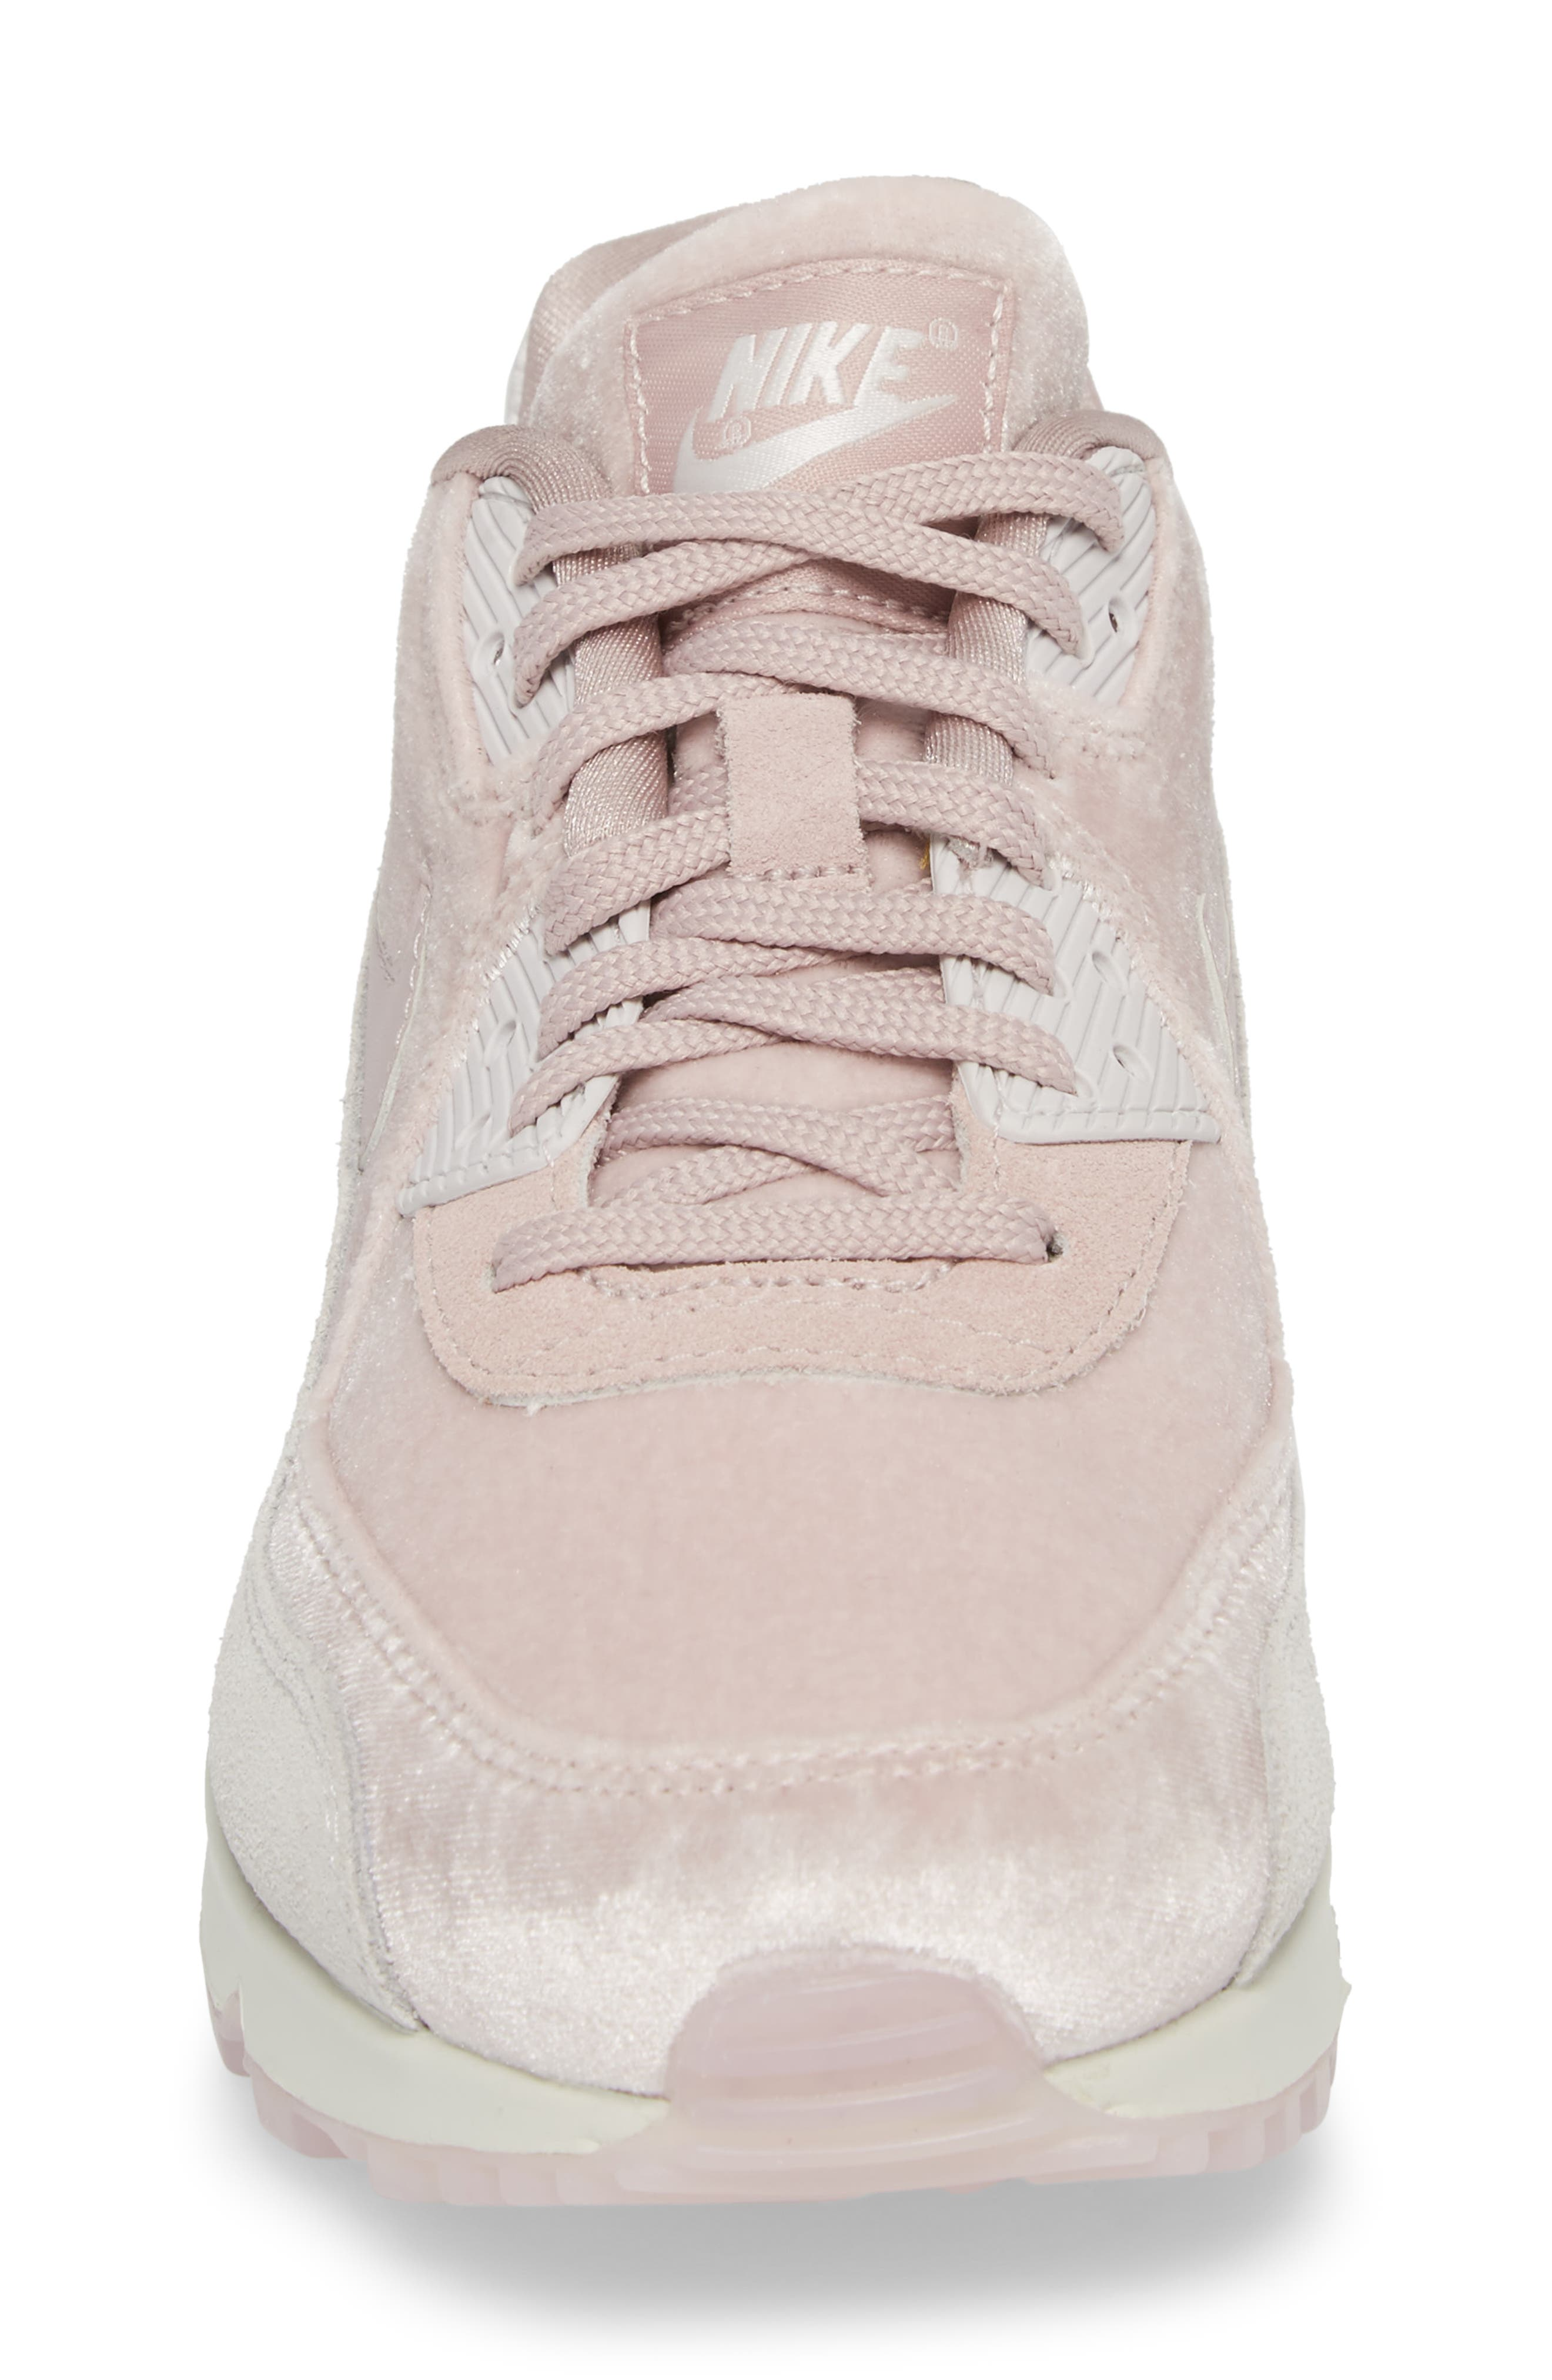 Air Max 90 LX Sneaker,                             Alternate thumbnail 5, color,                             Particle Rose/ Particle Rose